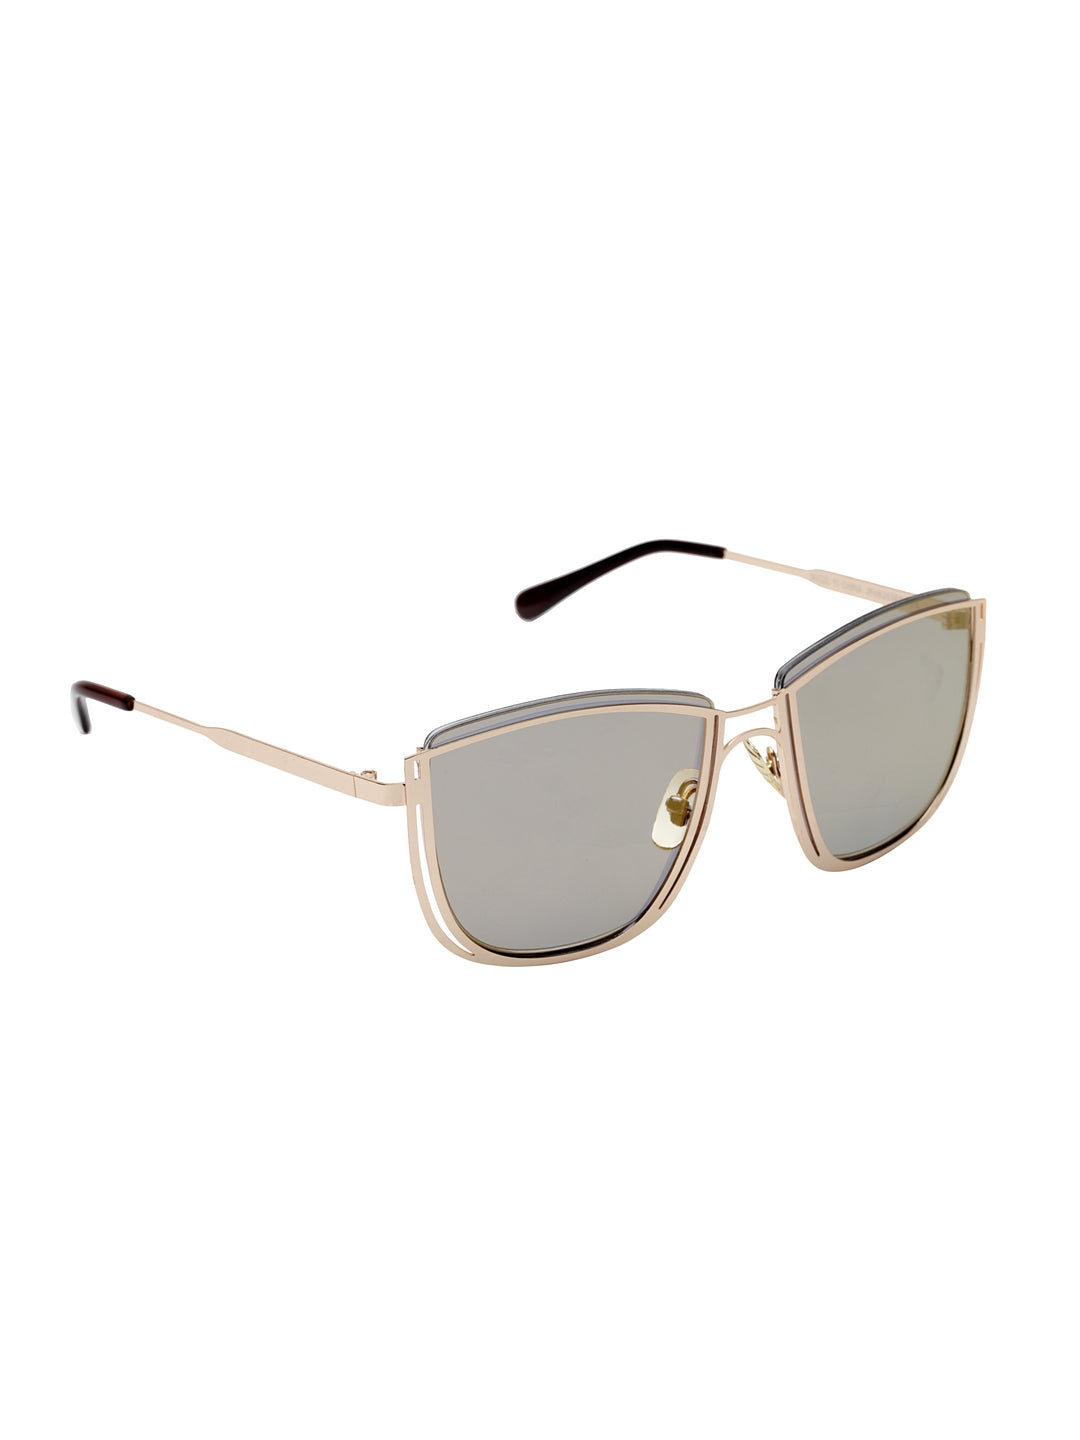 Avant-Garde Paris Trendy Beach UV400 Sunglasses